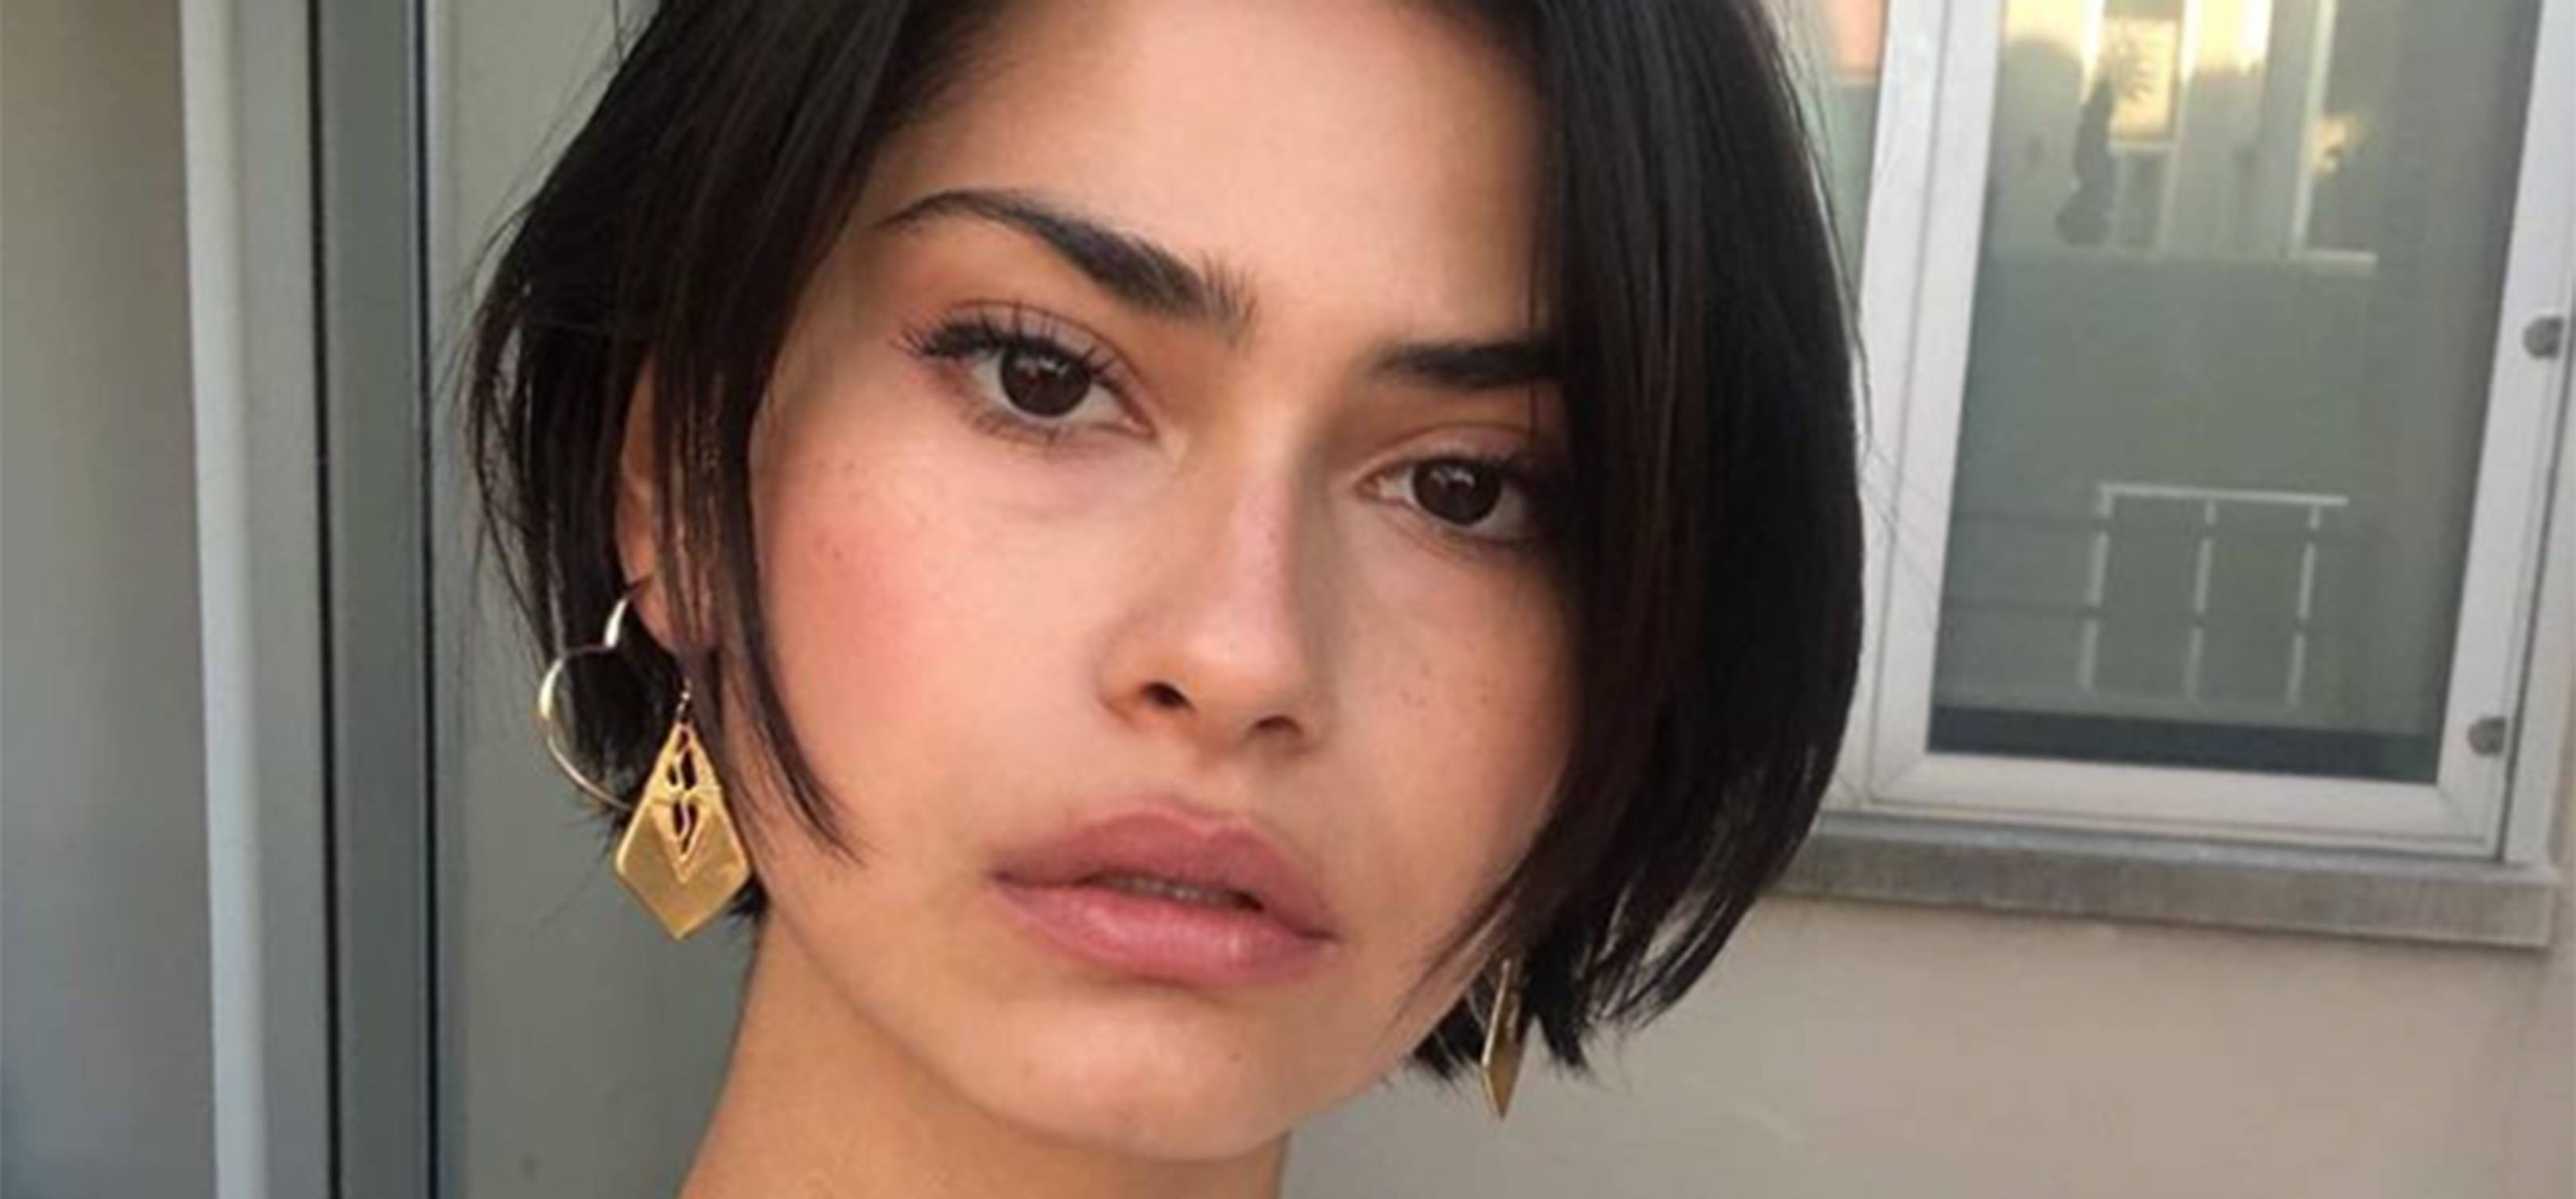 The French Bob Hair Trend Is A Cheekbone-Skimming Hairstyle